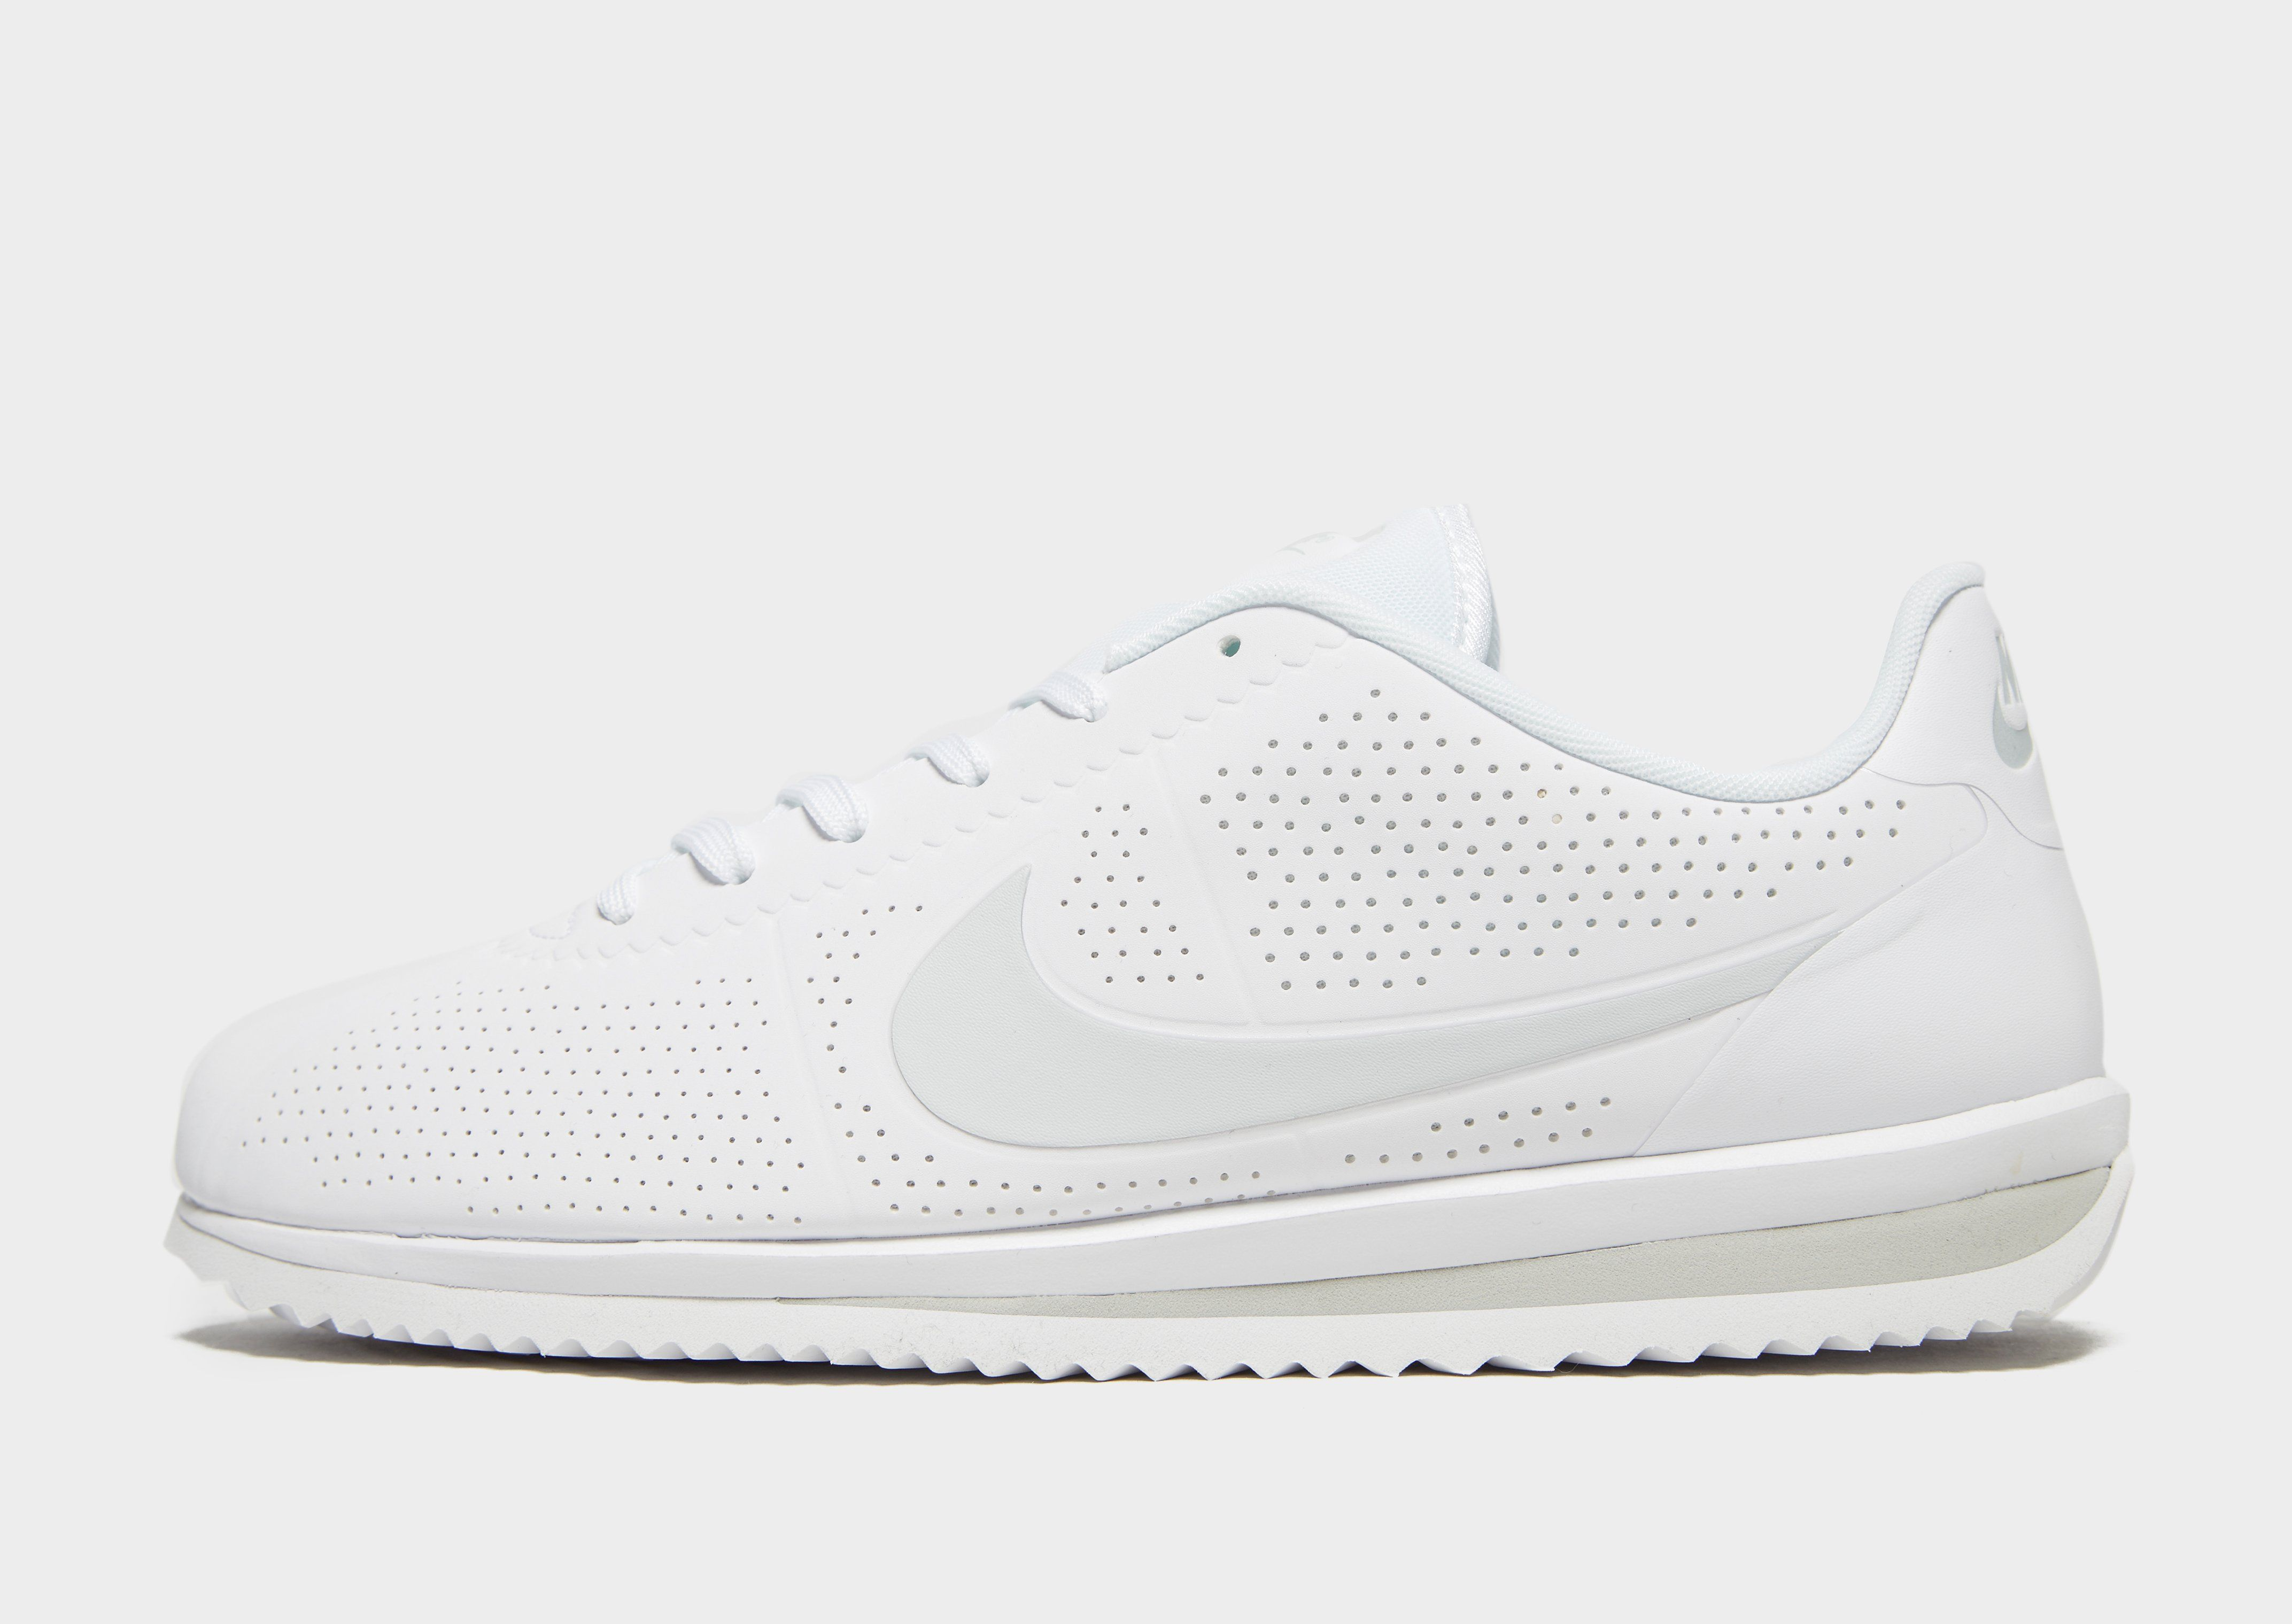 pretty nice 0aa69 d4ded Nike Cortez Ultra Moire   JD Sports